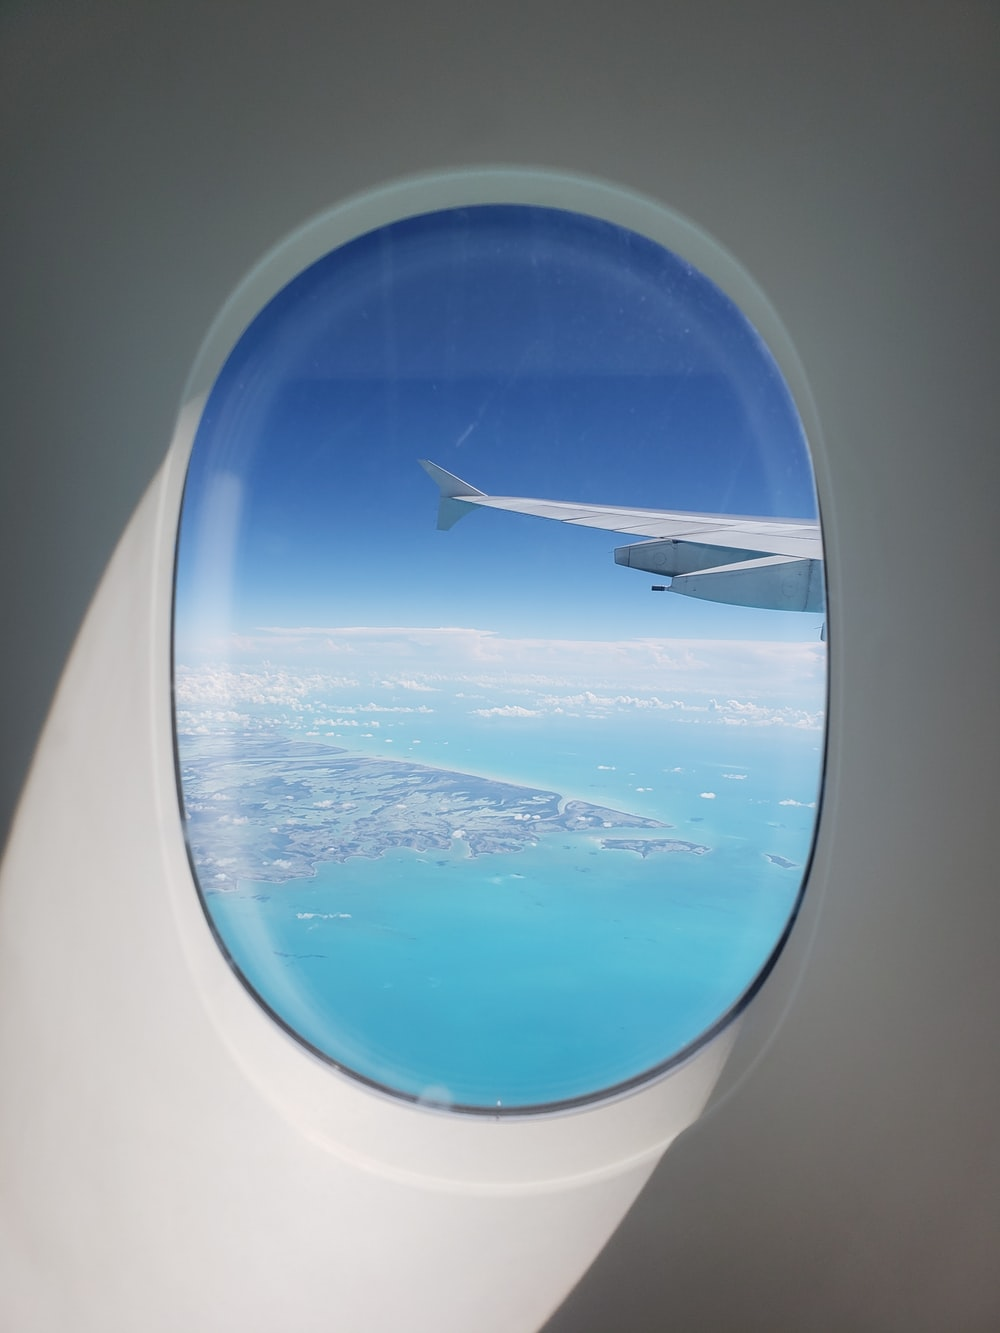 plane wing on air above body of water during daytime